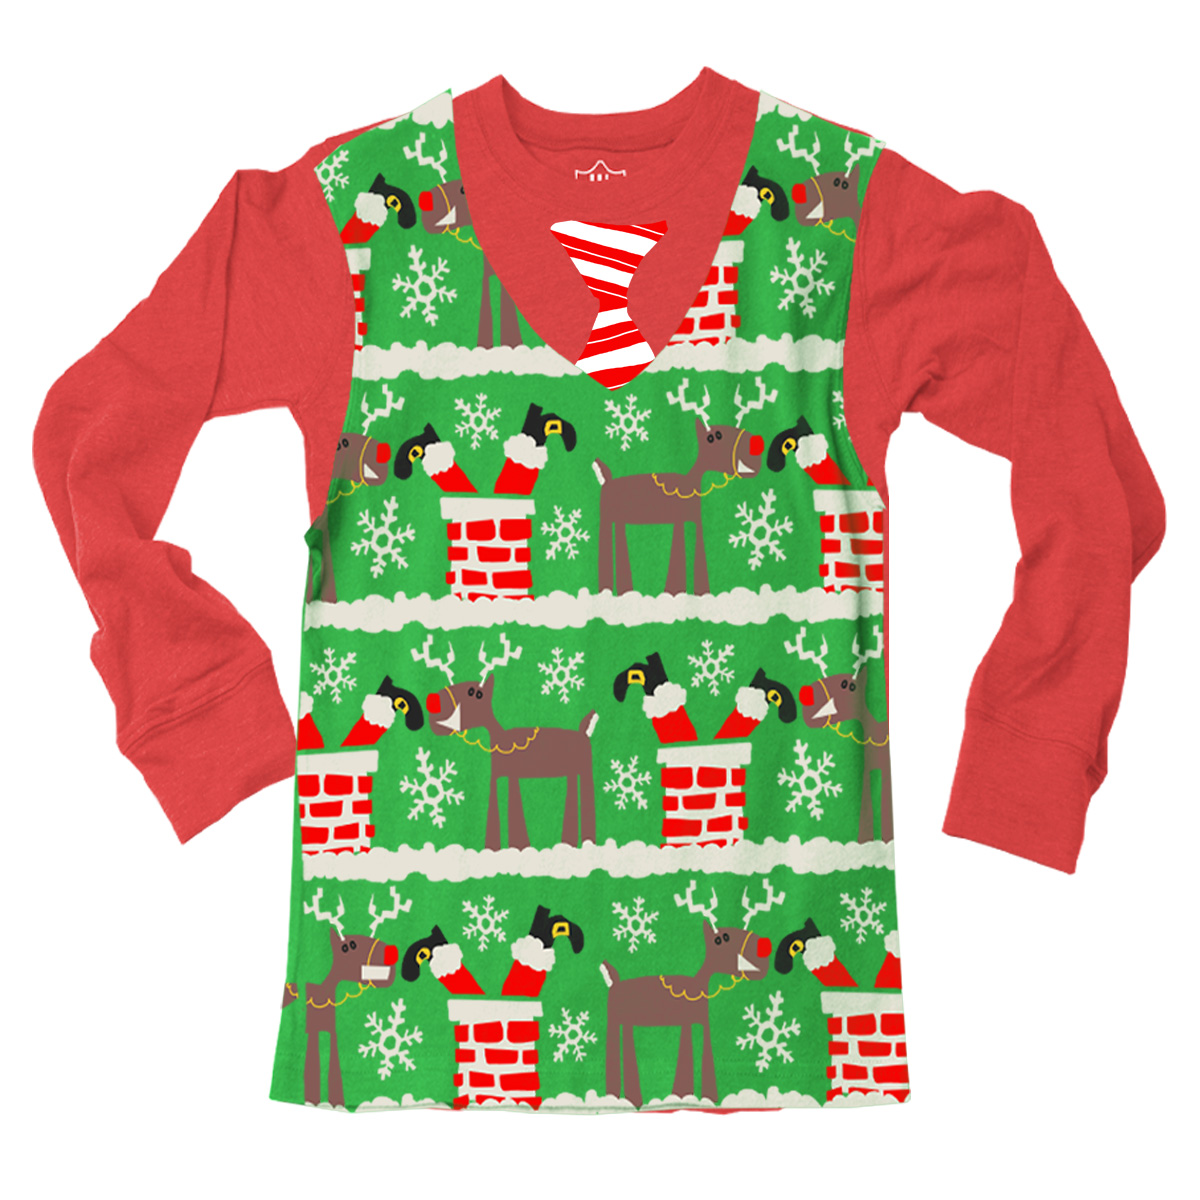 Wes Willy Boys Ugly Christmas Sweater Vest Shirt